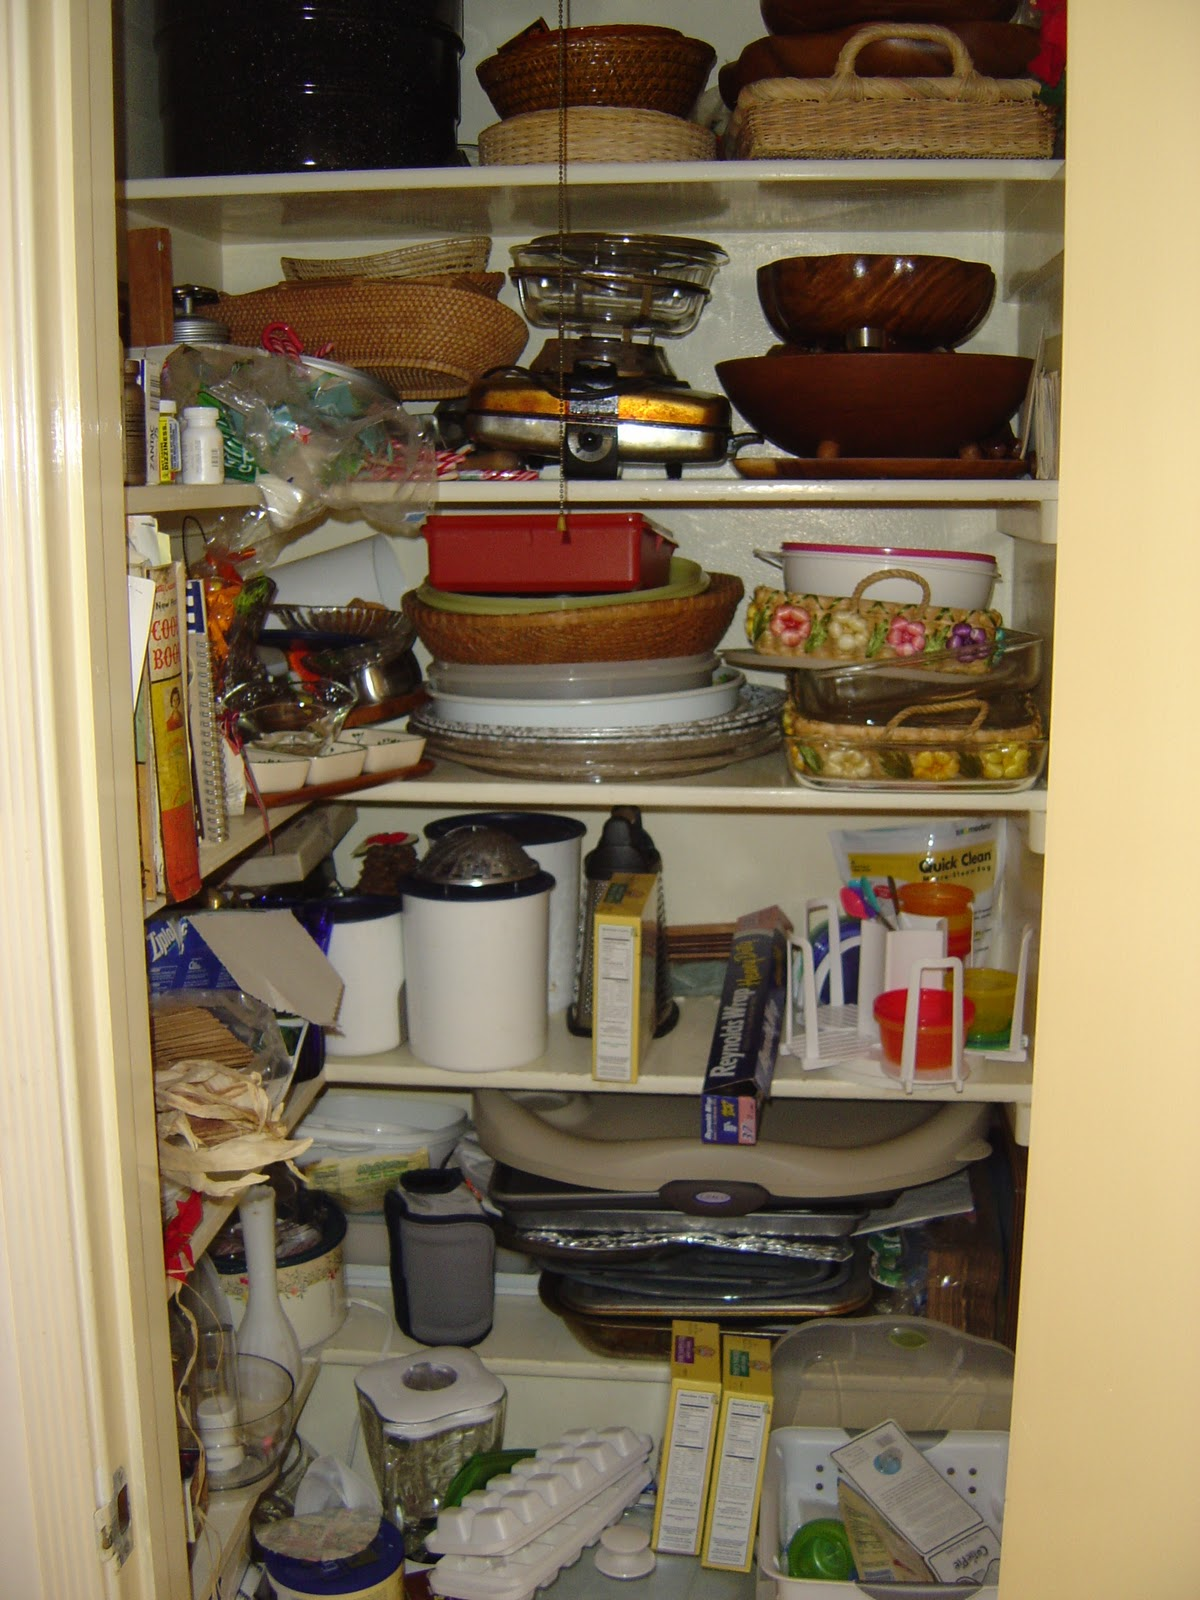 Kitchen Pantry Organization How I Organize My Kitchen The Pantry Organizing Made Fun How I